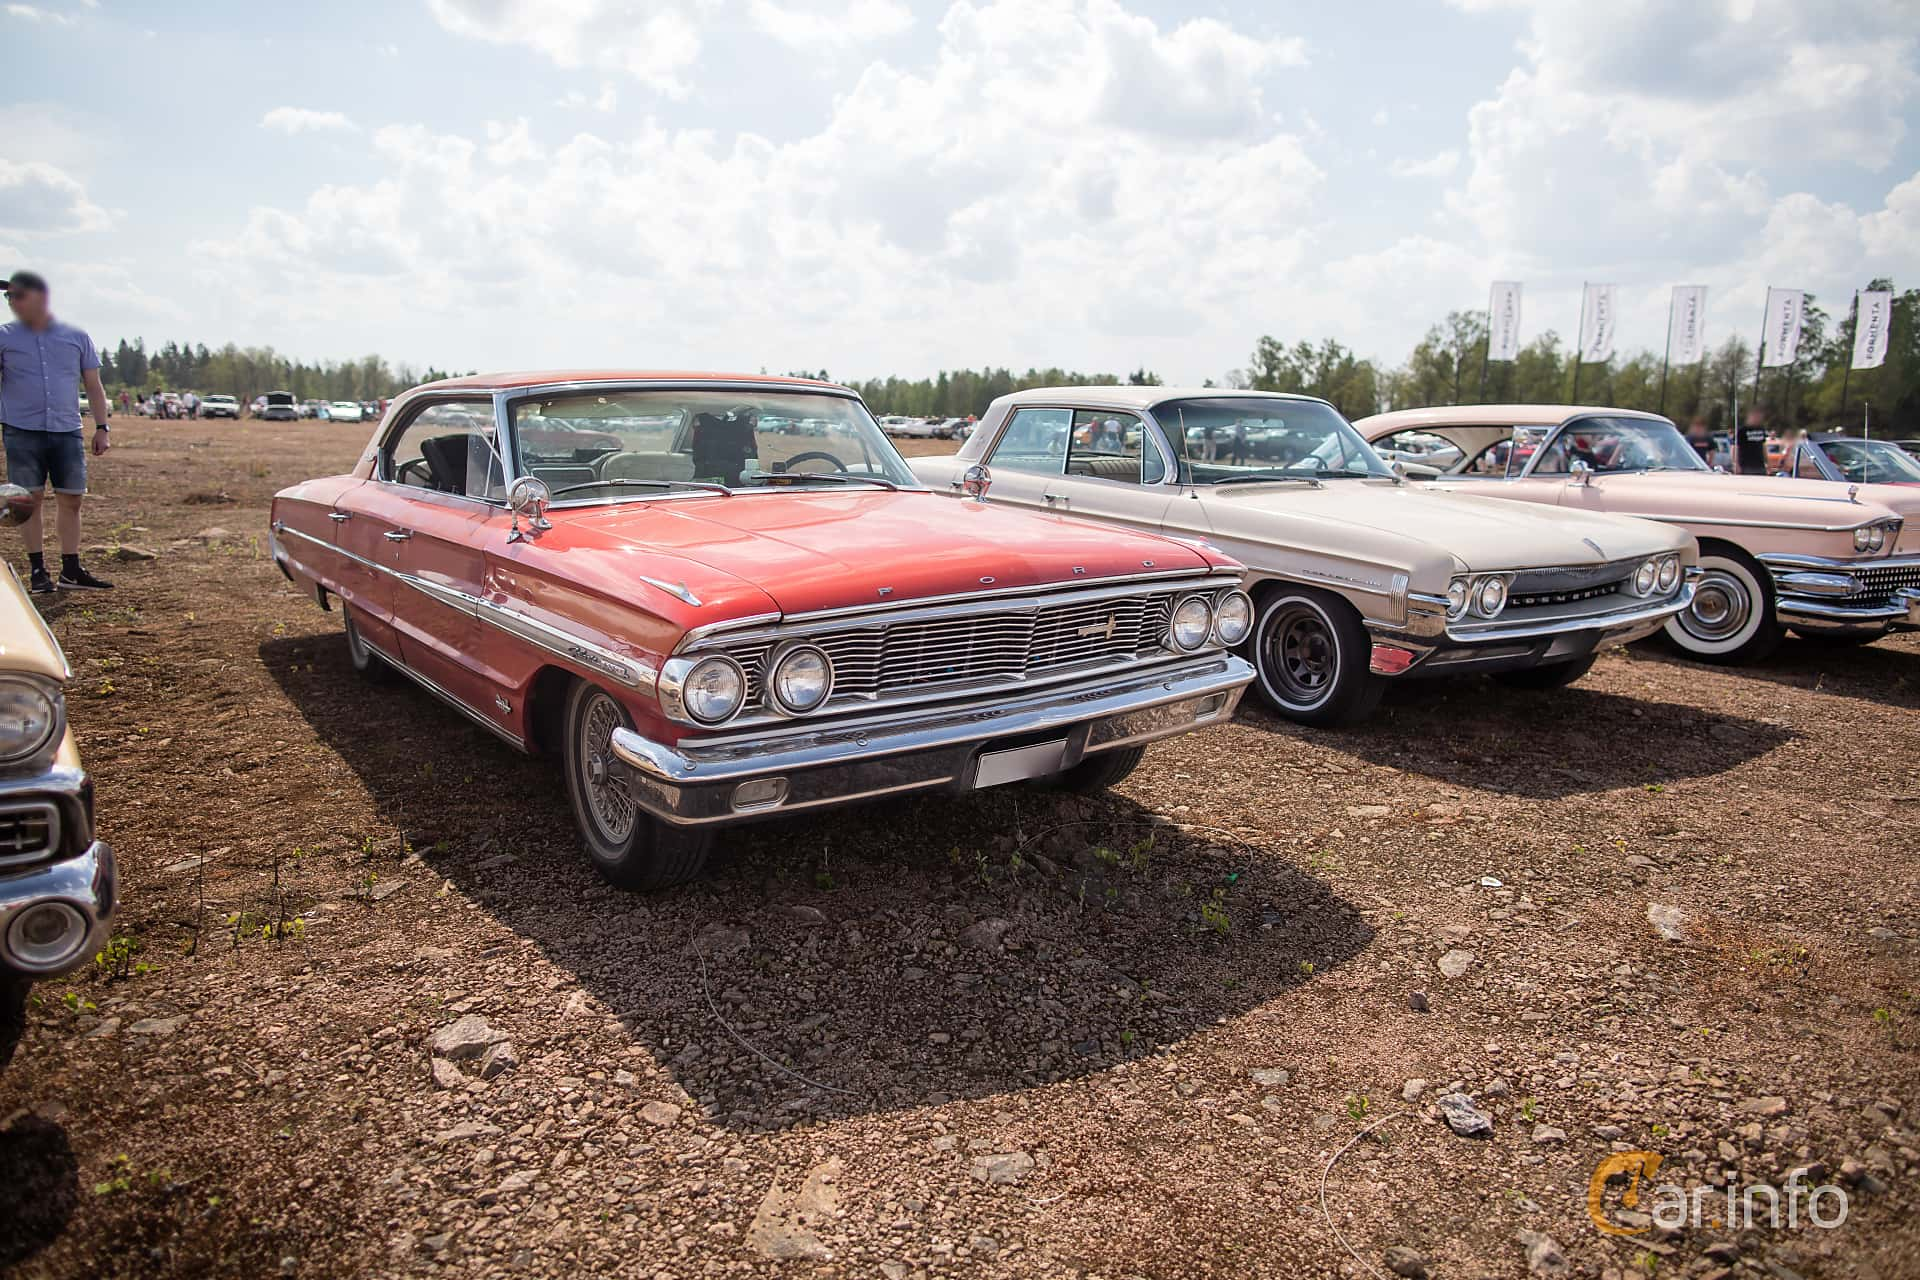 4 Images Of Ford Galaxie 500 Xl 4 Door Hardtop 6 4 V8 Automatic